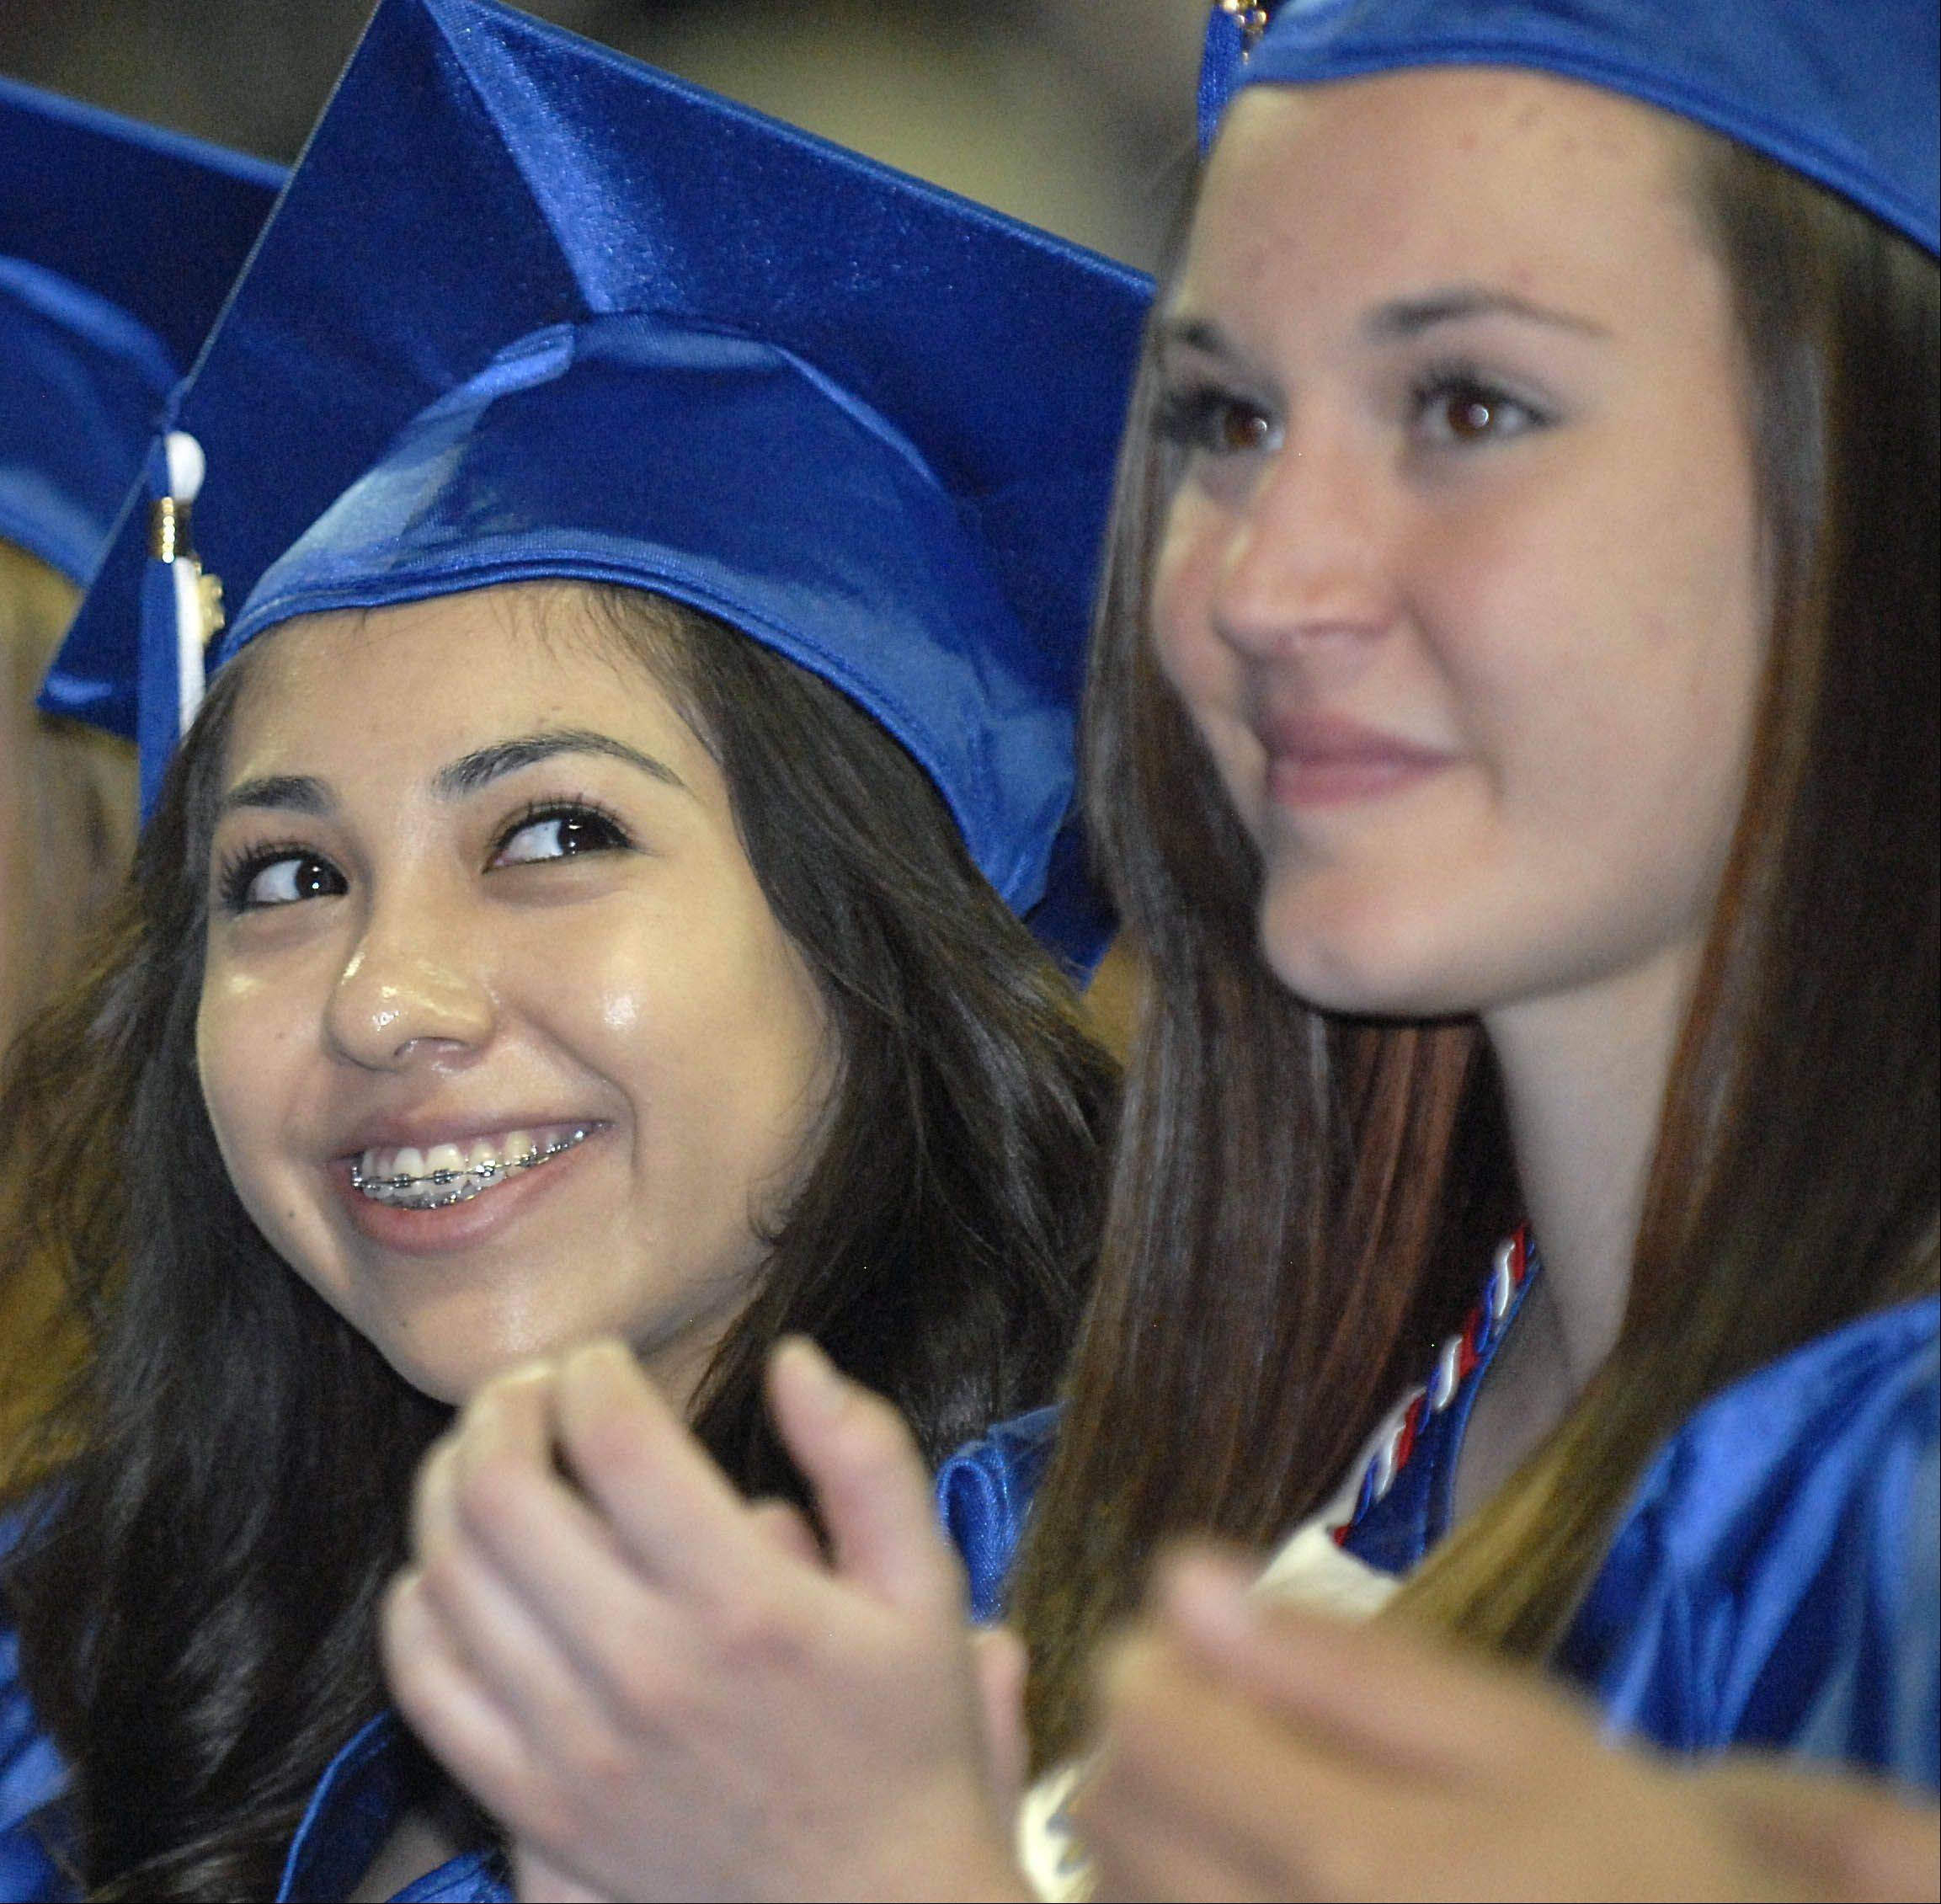 Images from the Larkin High School graduation Saturday, May 26, 2012 at the Sears Centre in Hoffman Estates.